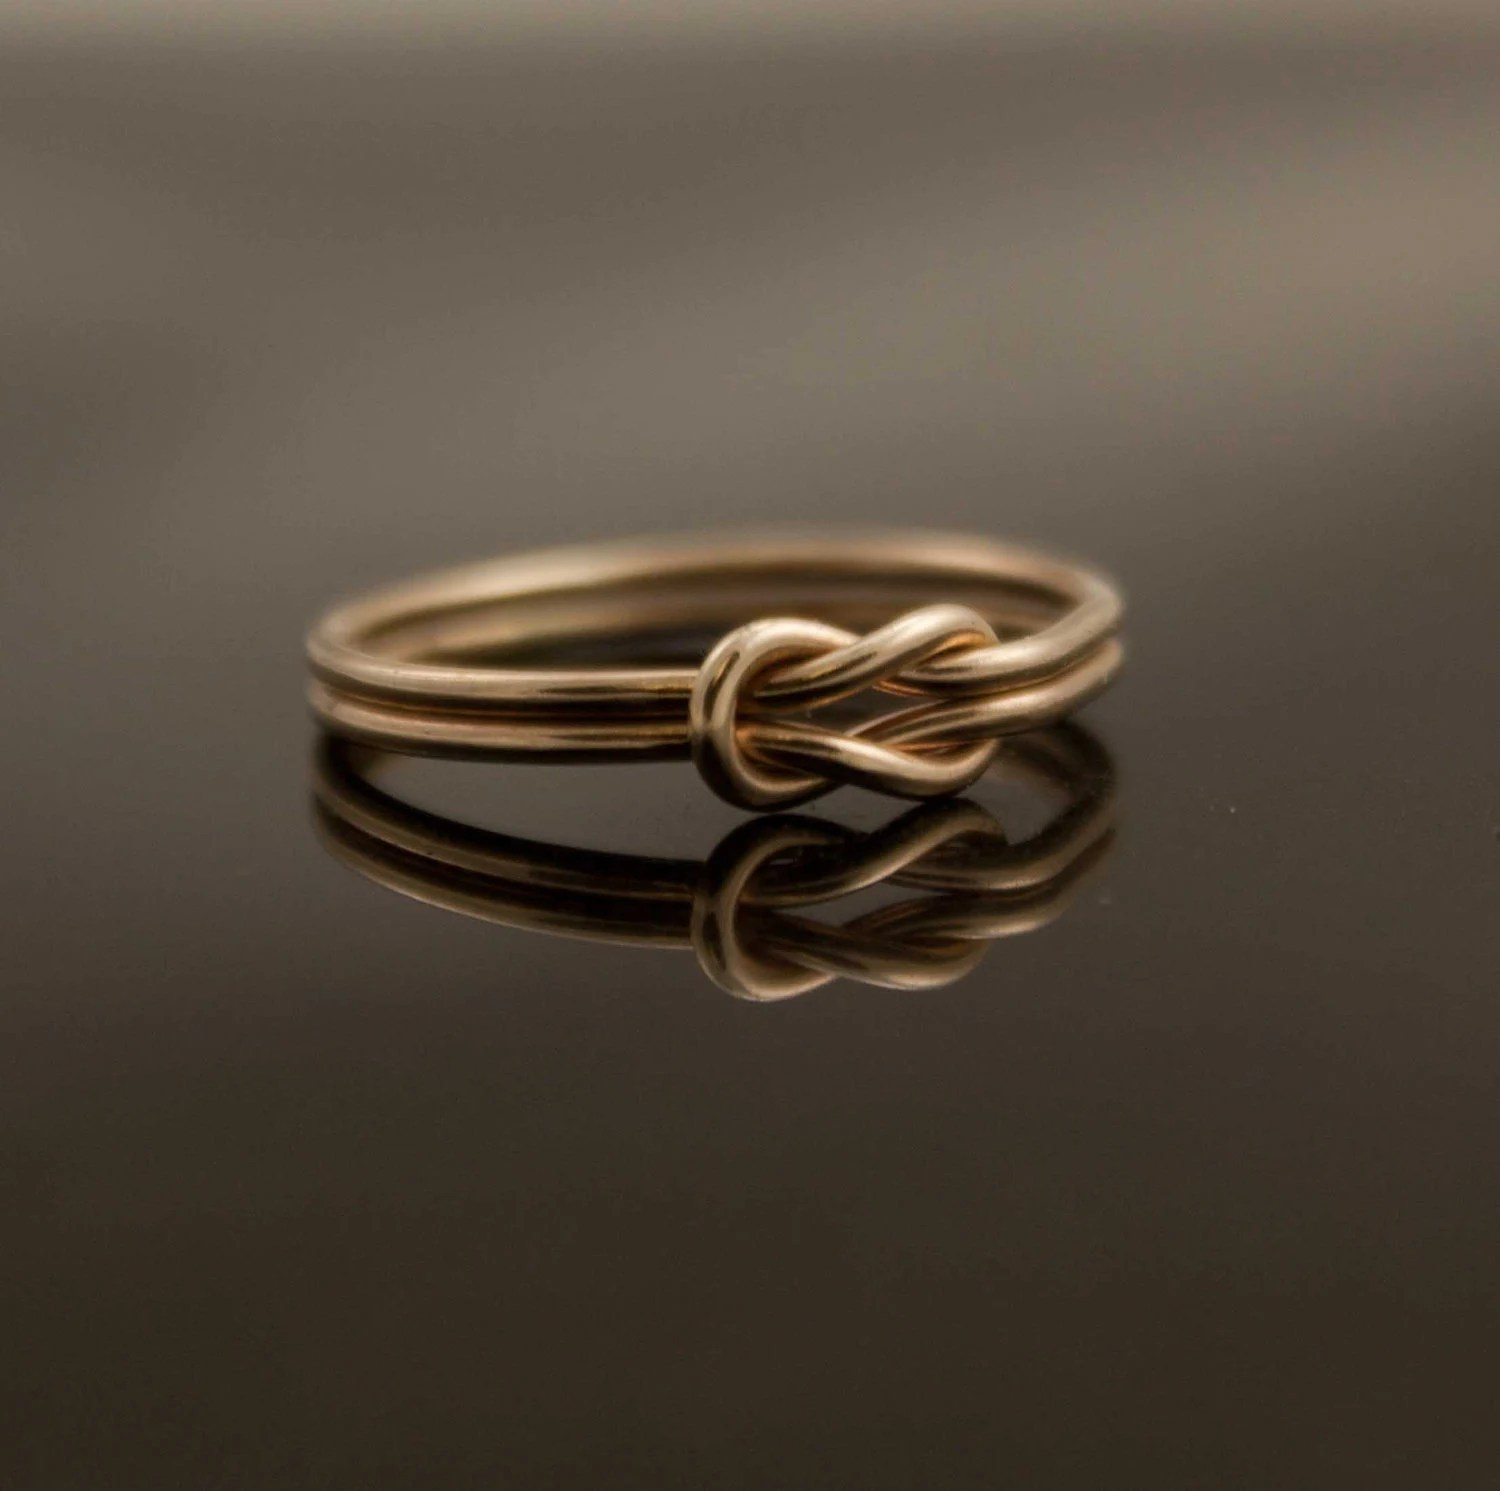 infinity knot diamond ring *lrbcqDgw infinity wedding band Request